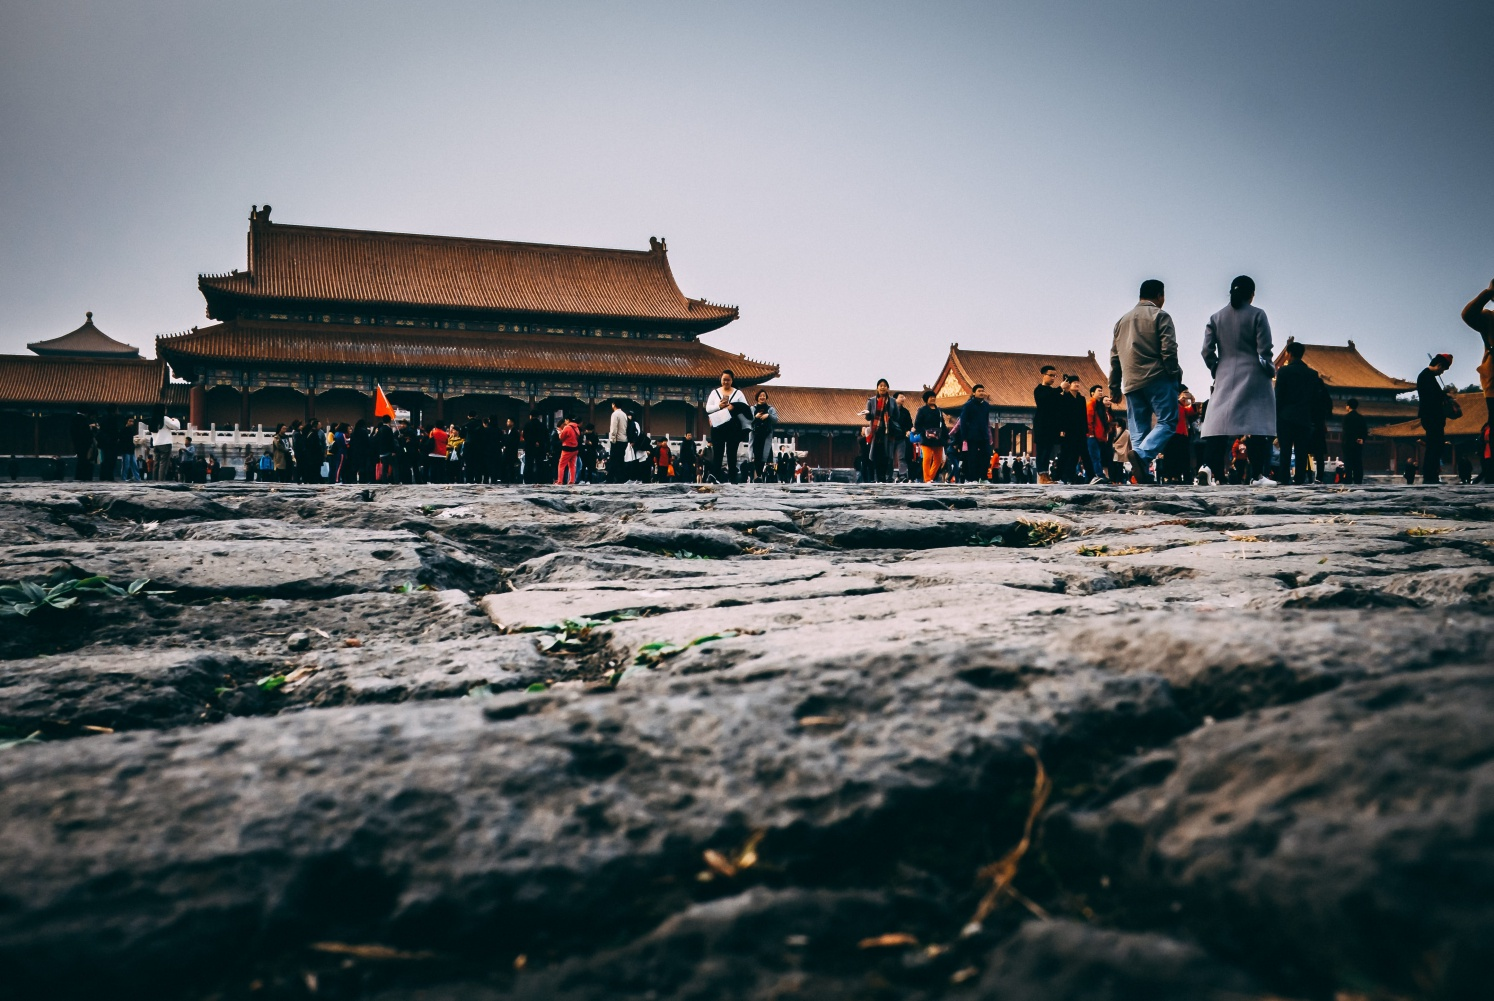 Days 1-3: Fly To Beijing/ Tiananmen Square & Forbidden City - Fly to Beijing. Visit the Forbidden City & Tiananmen Square and feel centuries of history all around you at this impressive and thought provoking Beijing must-see.